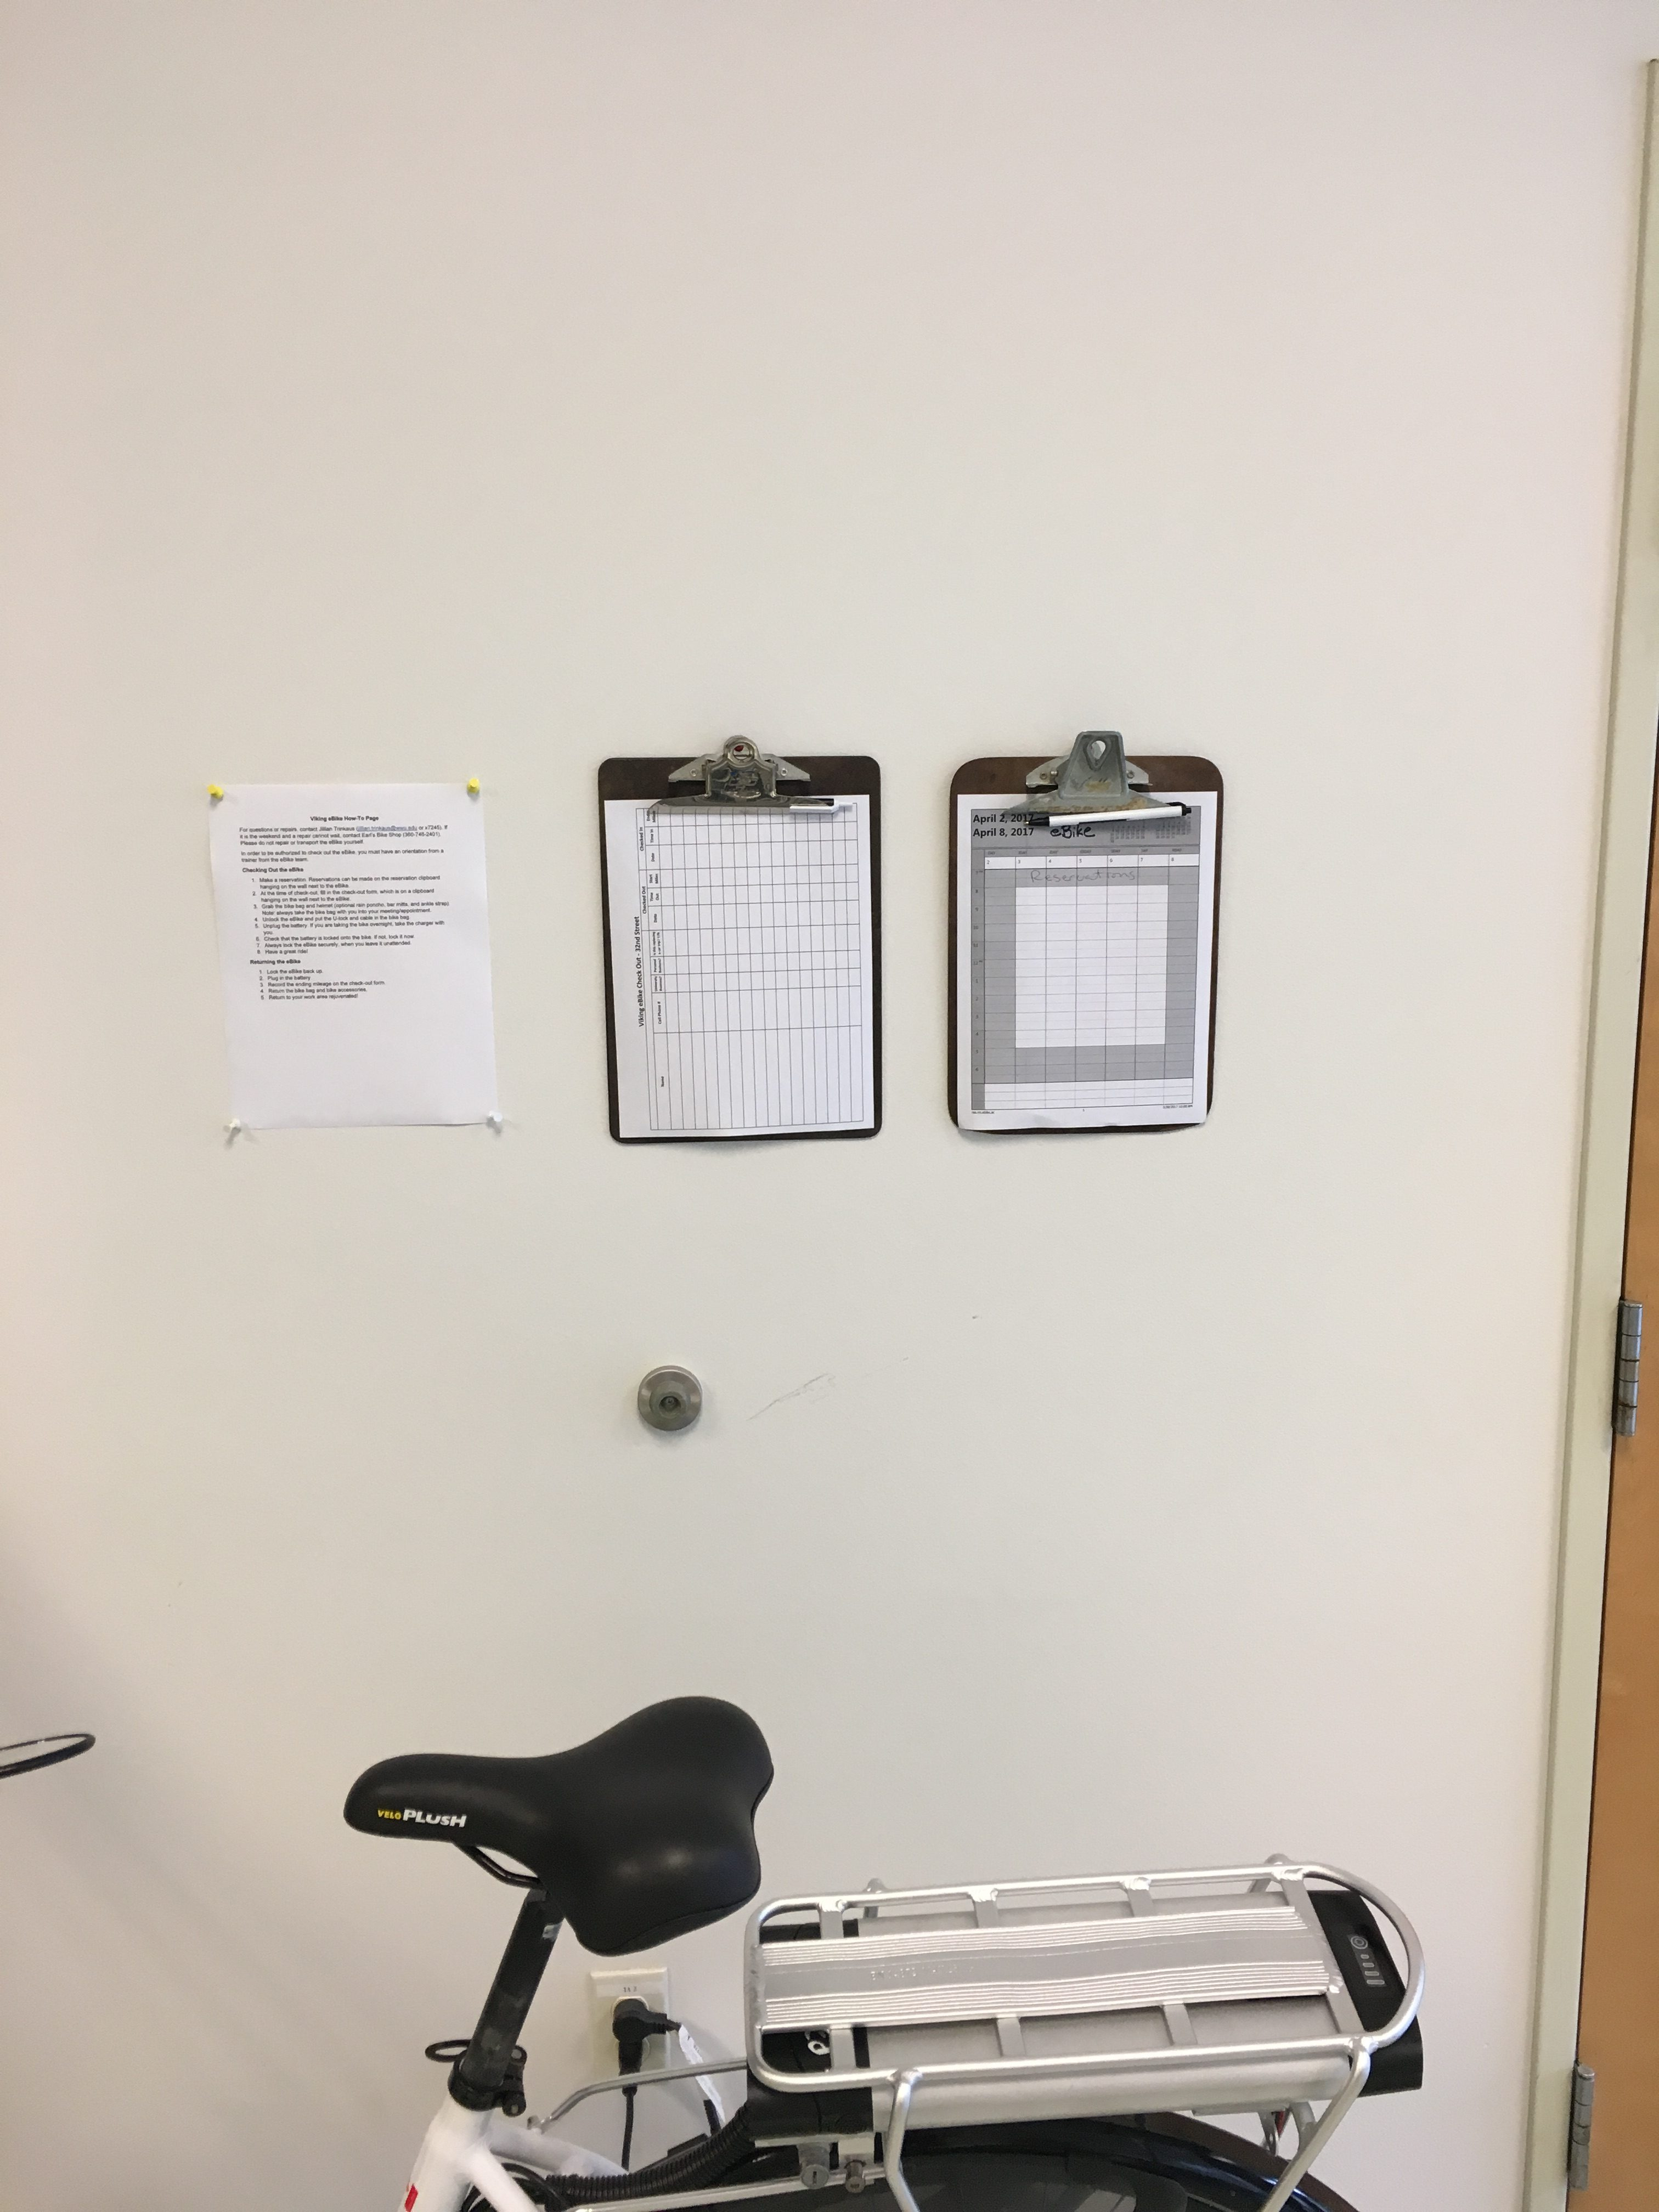 eBike up against a wall that's holding clipboards with paper